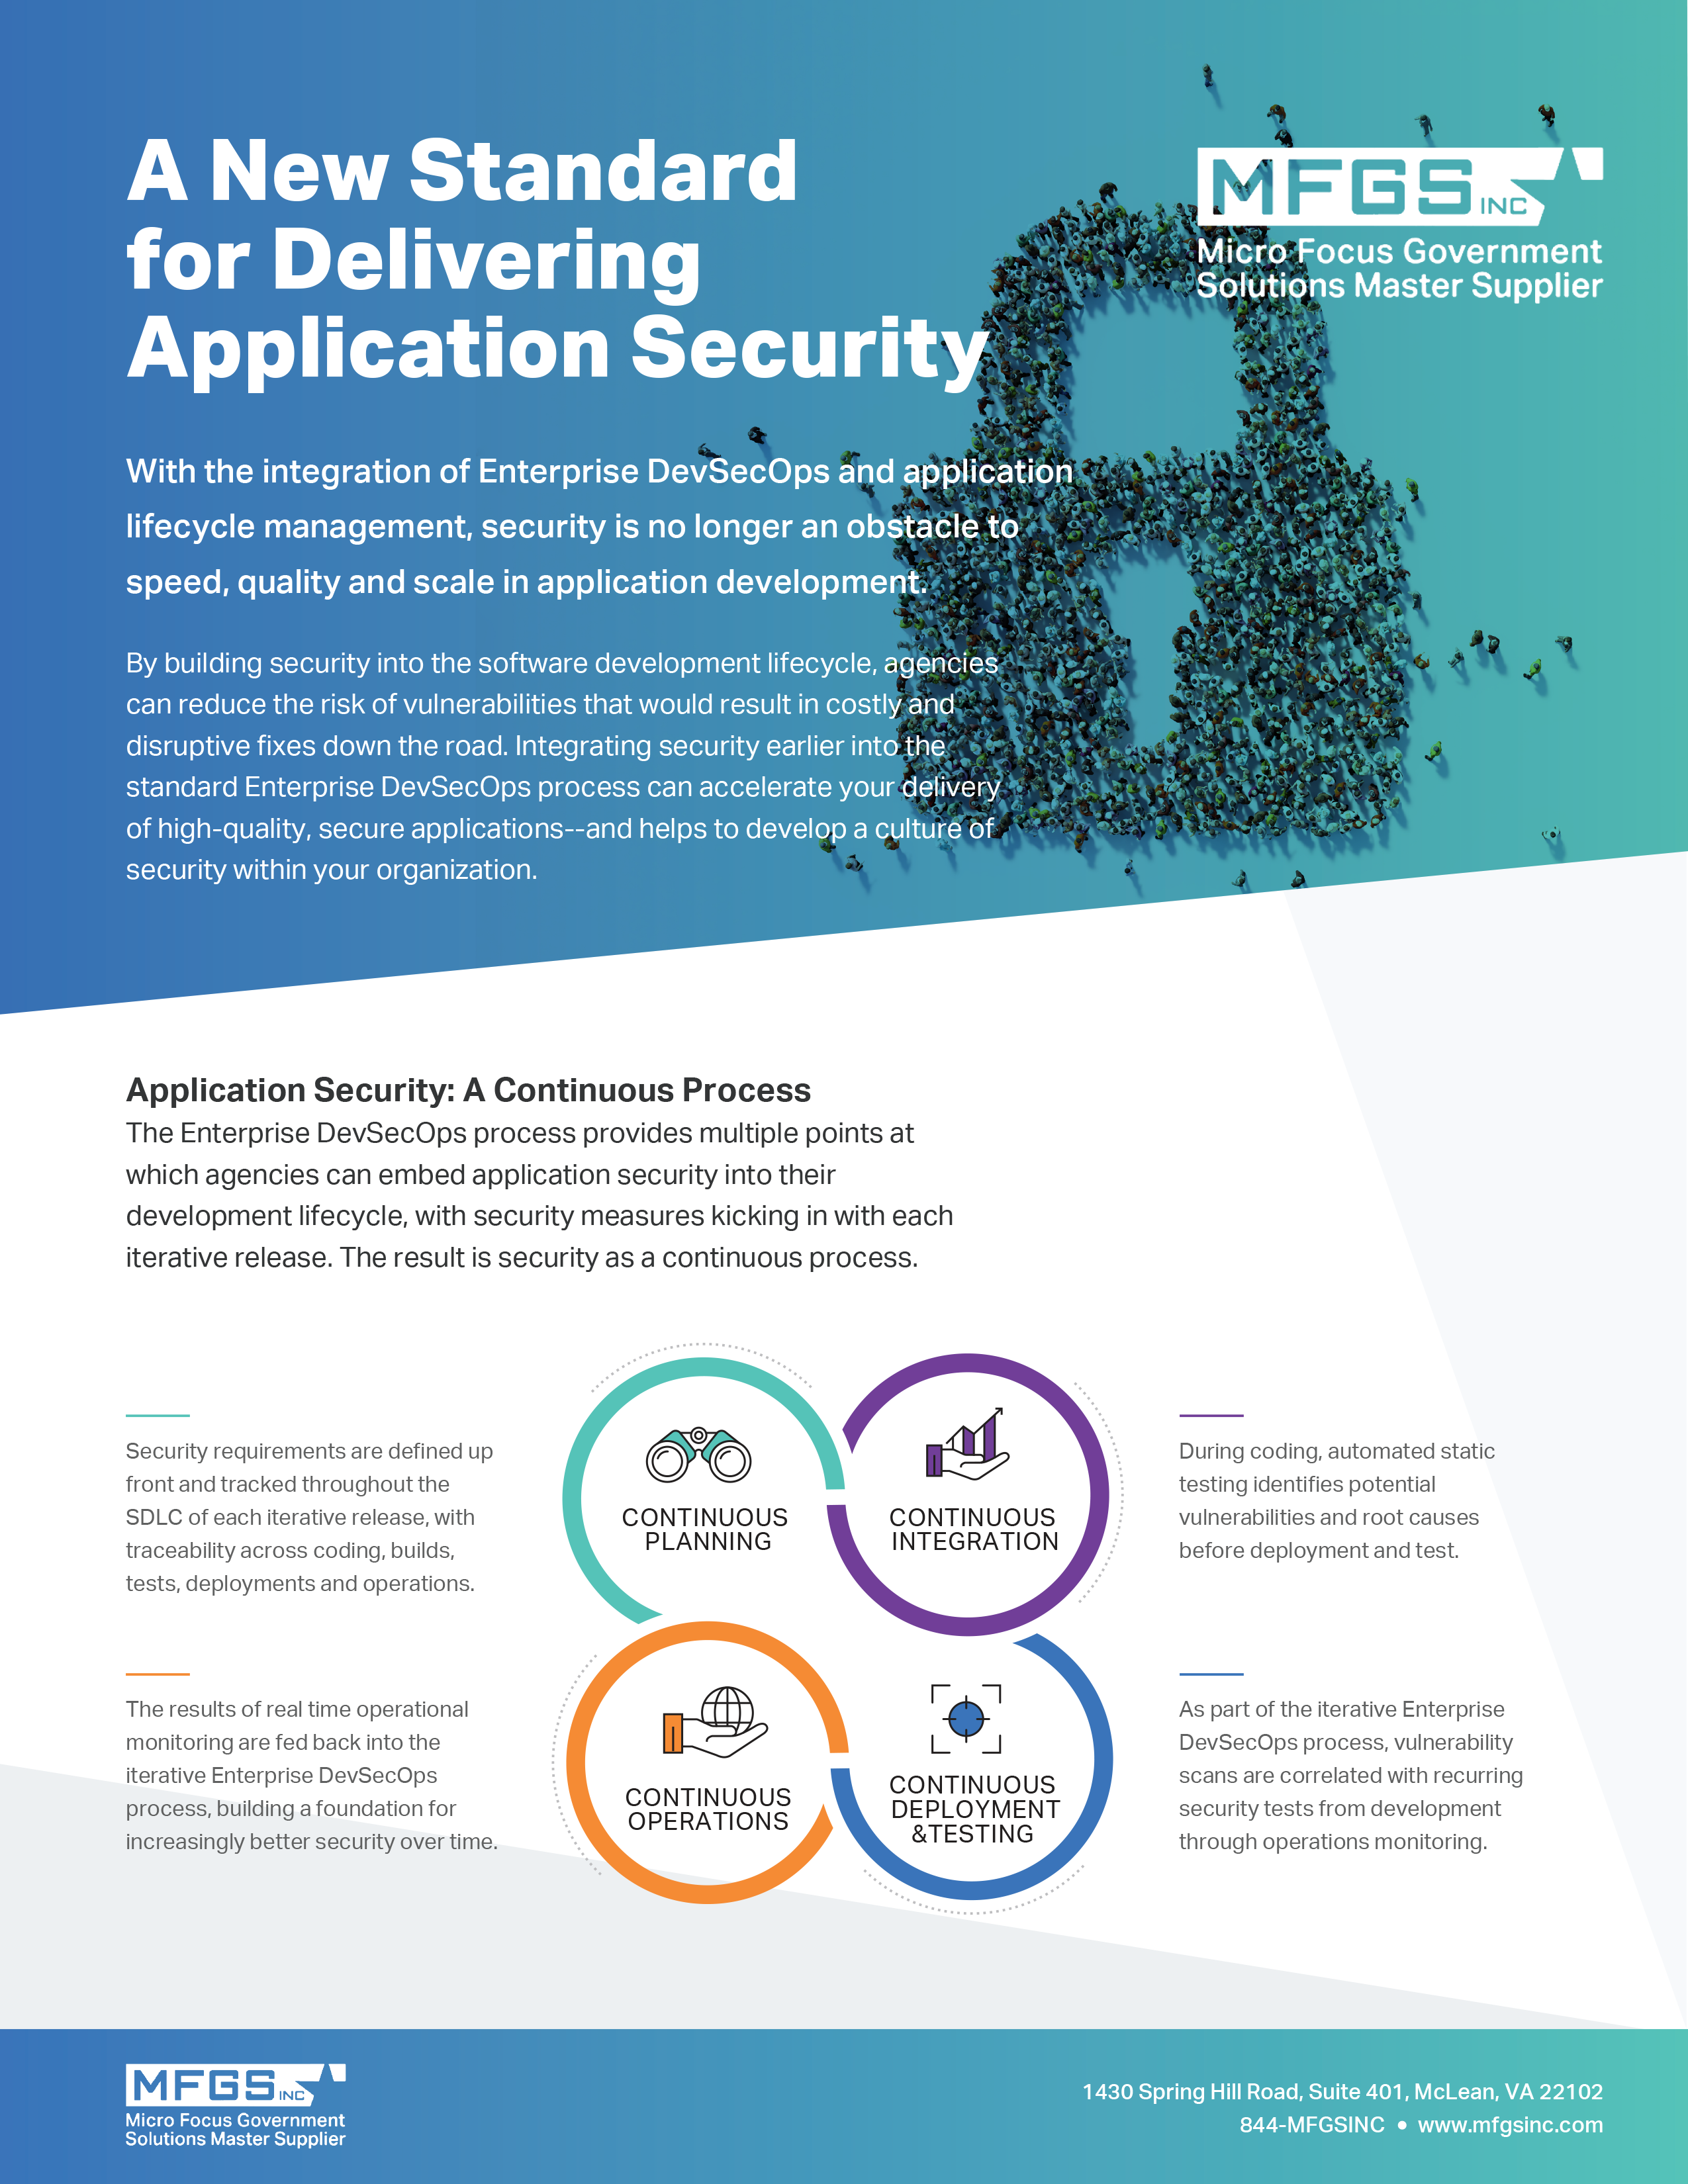 A New Standard for Delivering Application Security preview